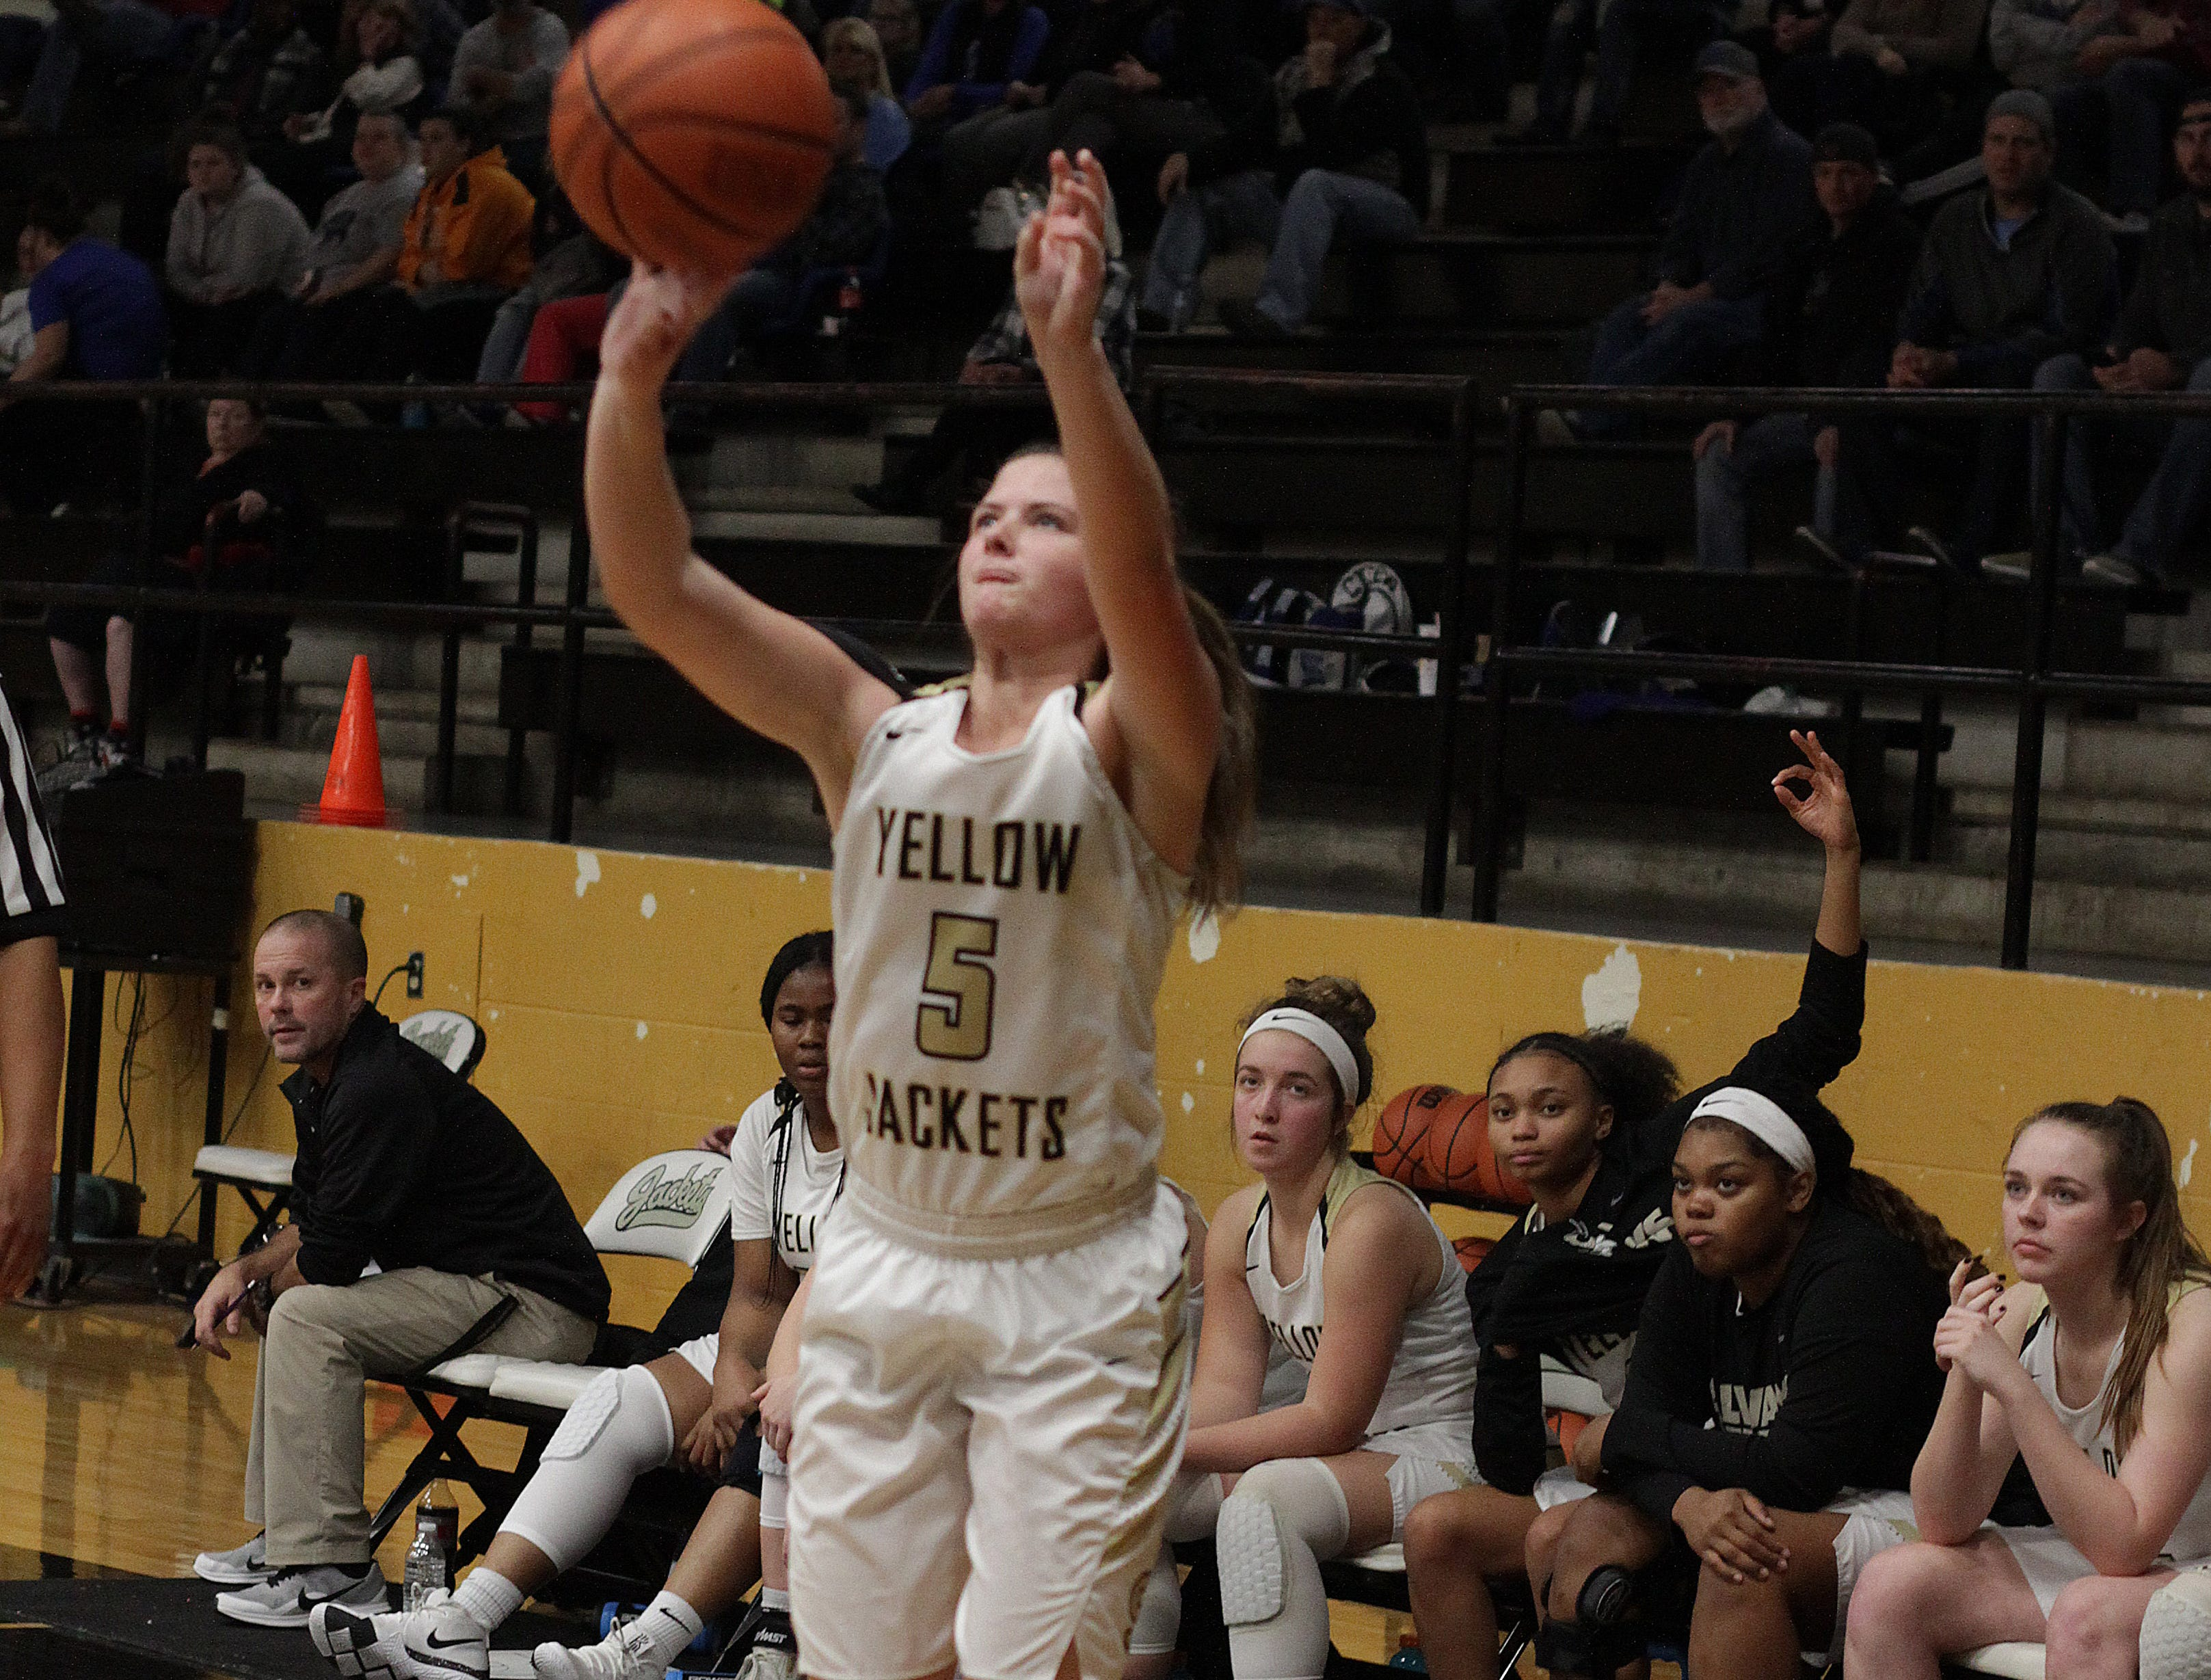 Springfield's Elizabeth Funk shoots a jump shot against White House on Tuesday, December 18, 2018.